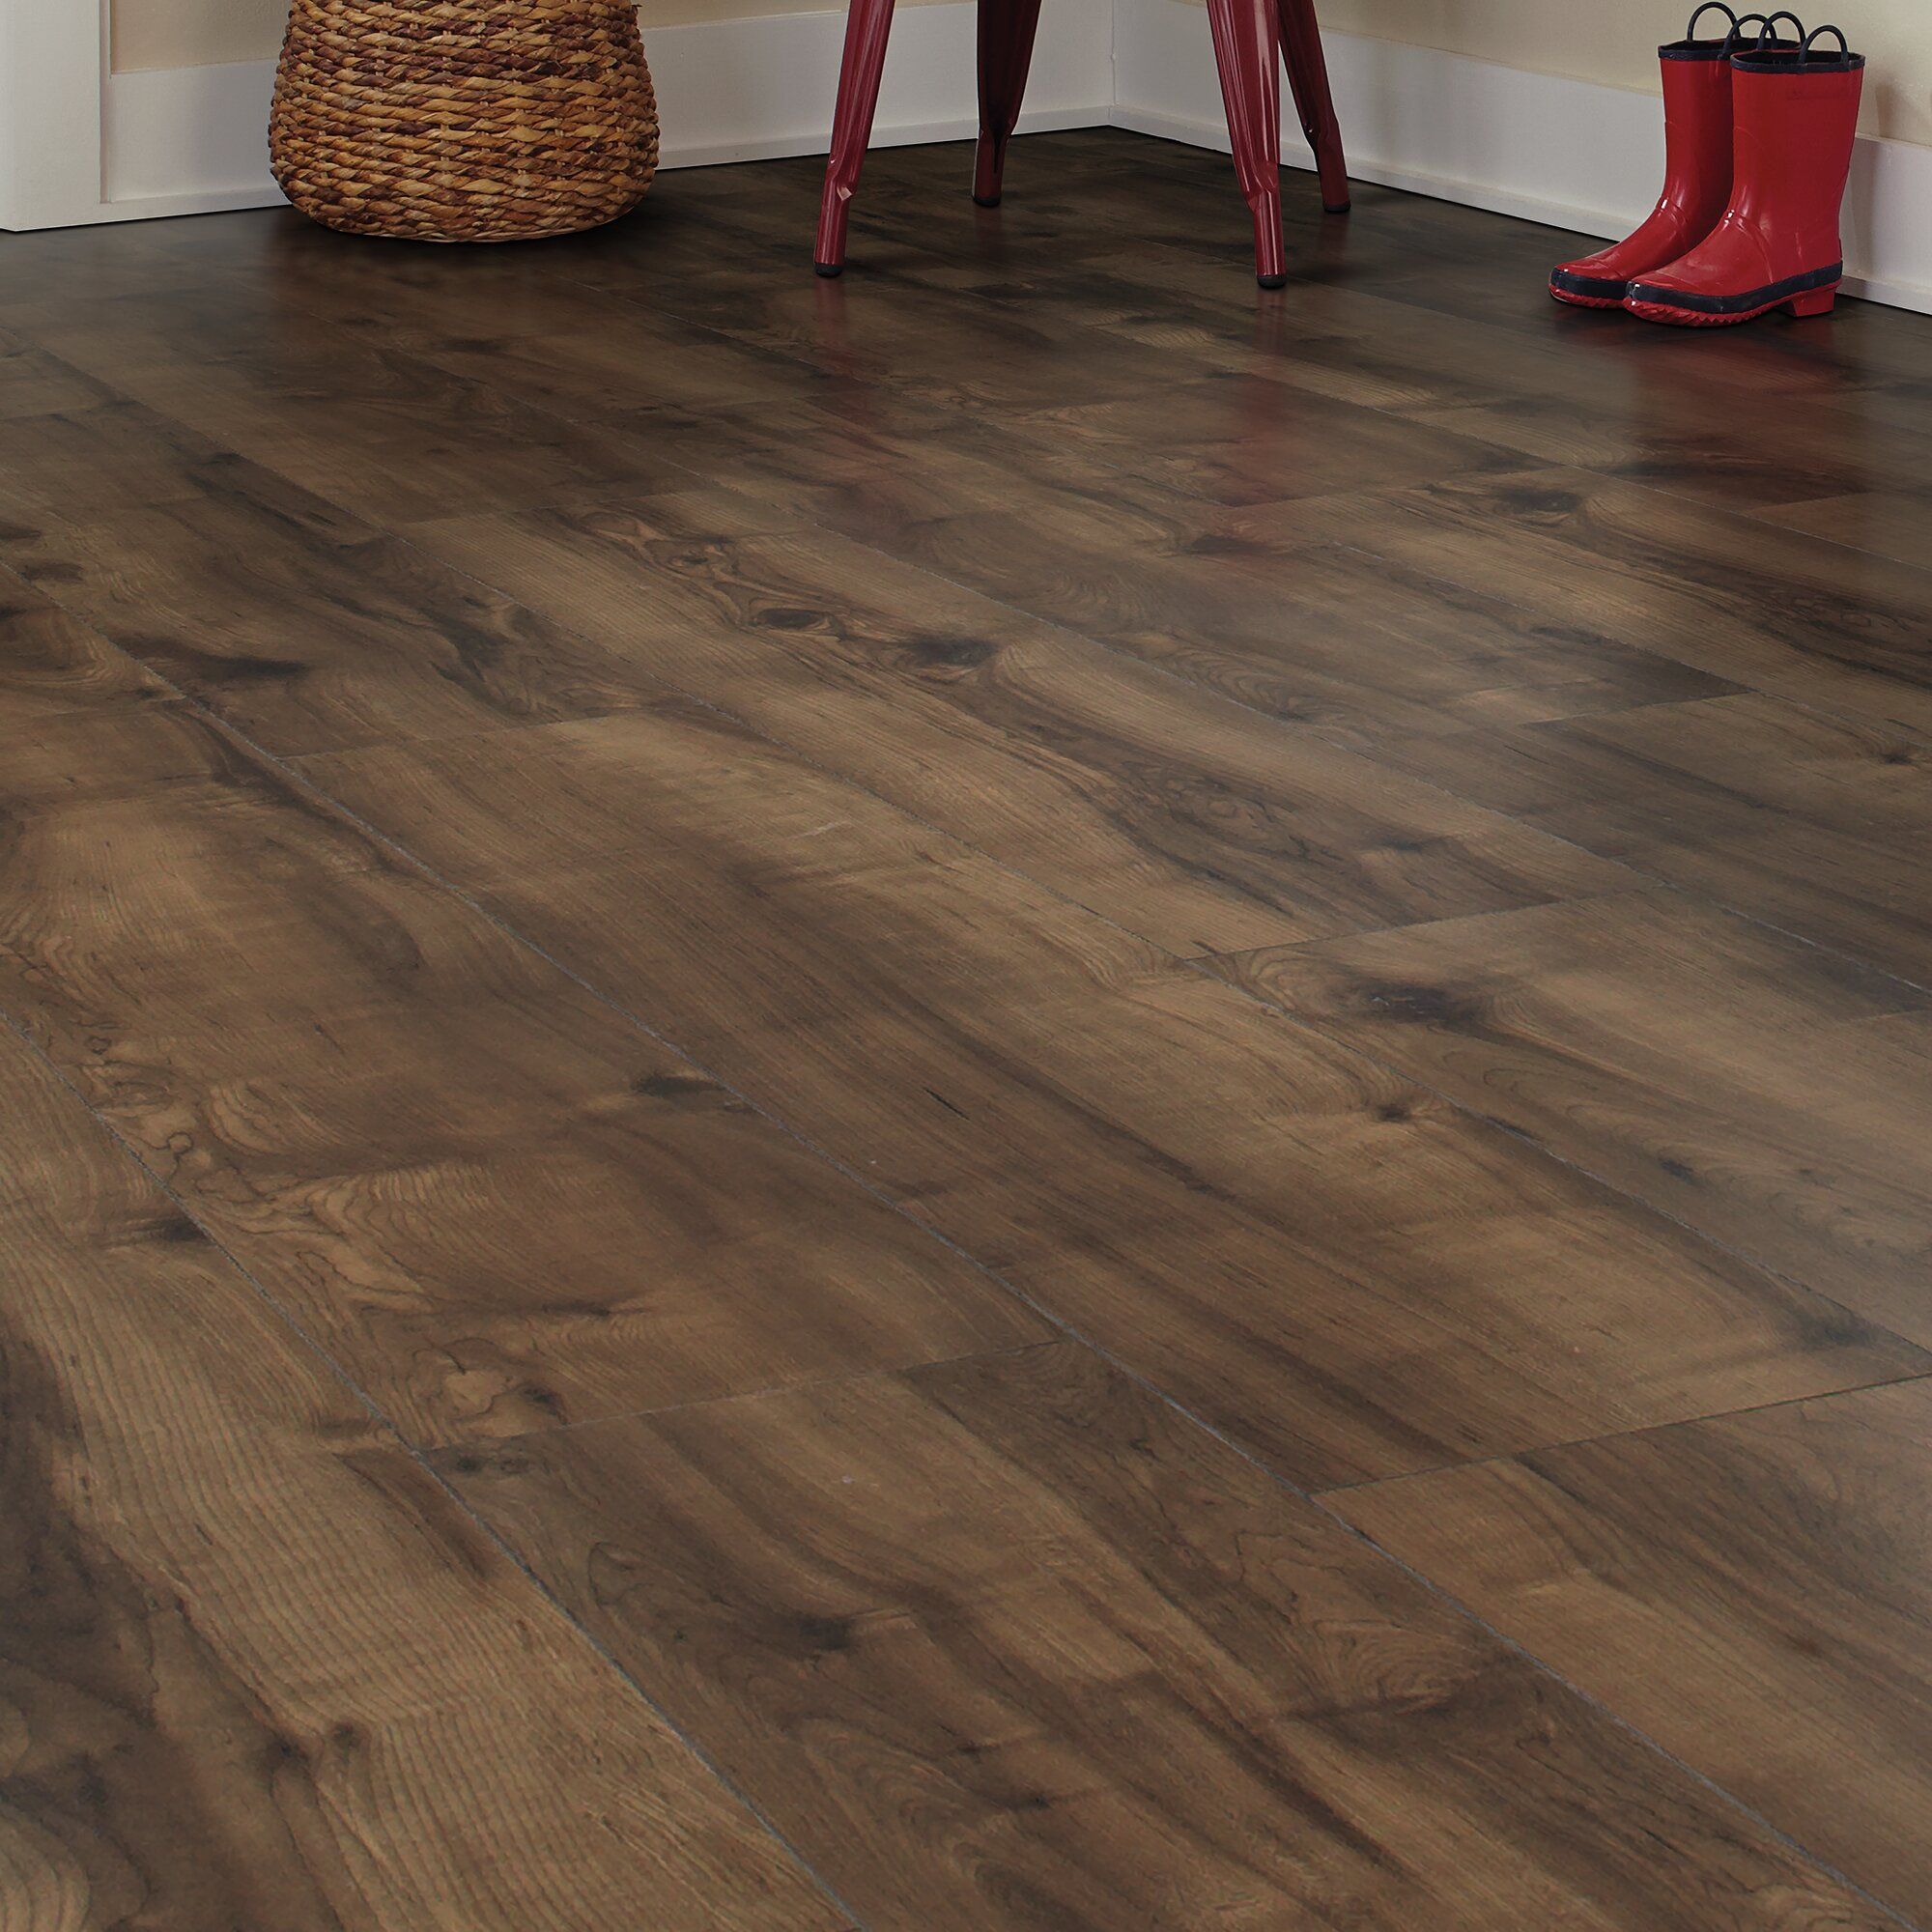 Maple Laminate Flooring maple laminate flooring plan Cashe Hills 8 X 47 X 787mm Maple Laminate In Chocolate